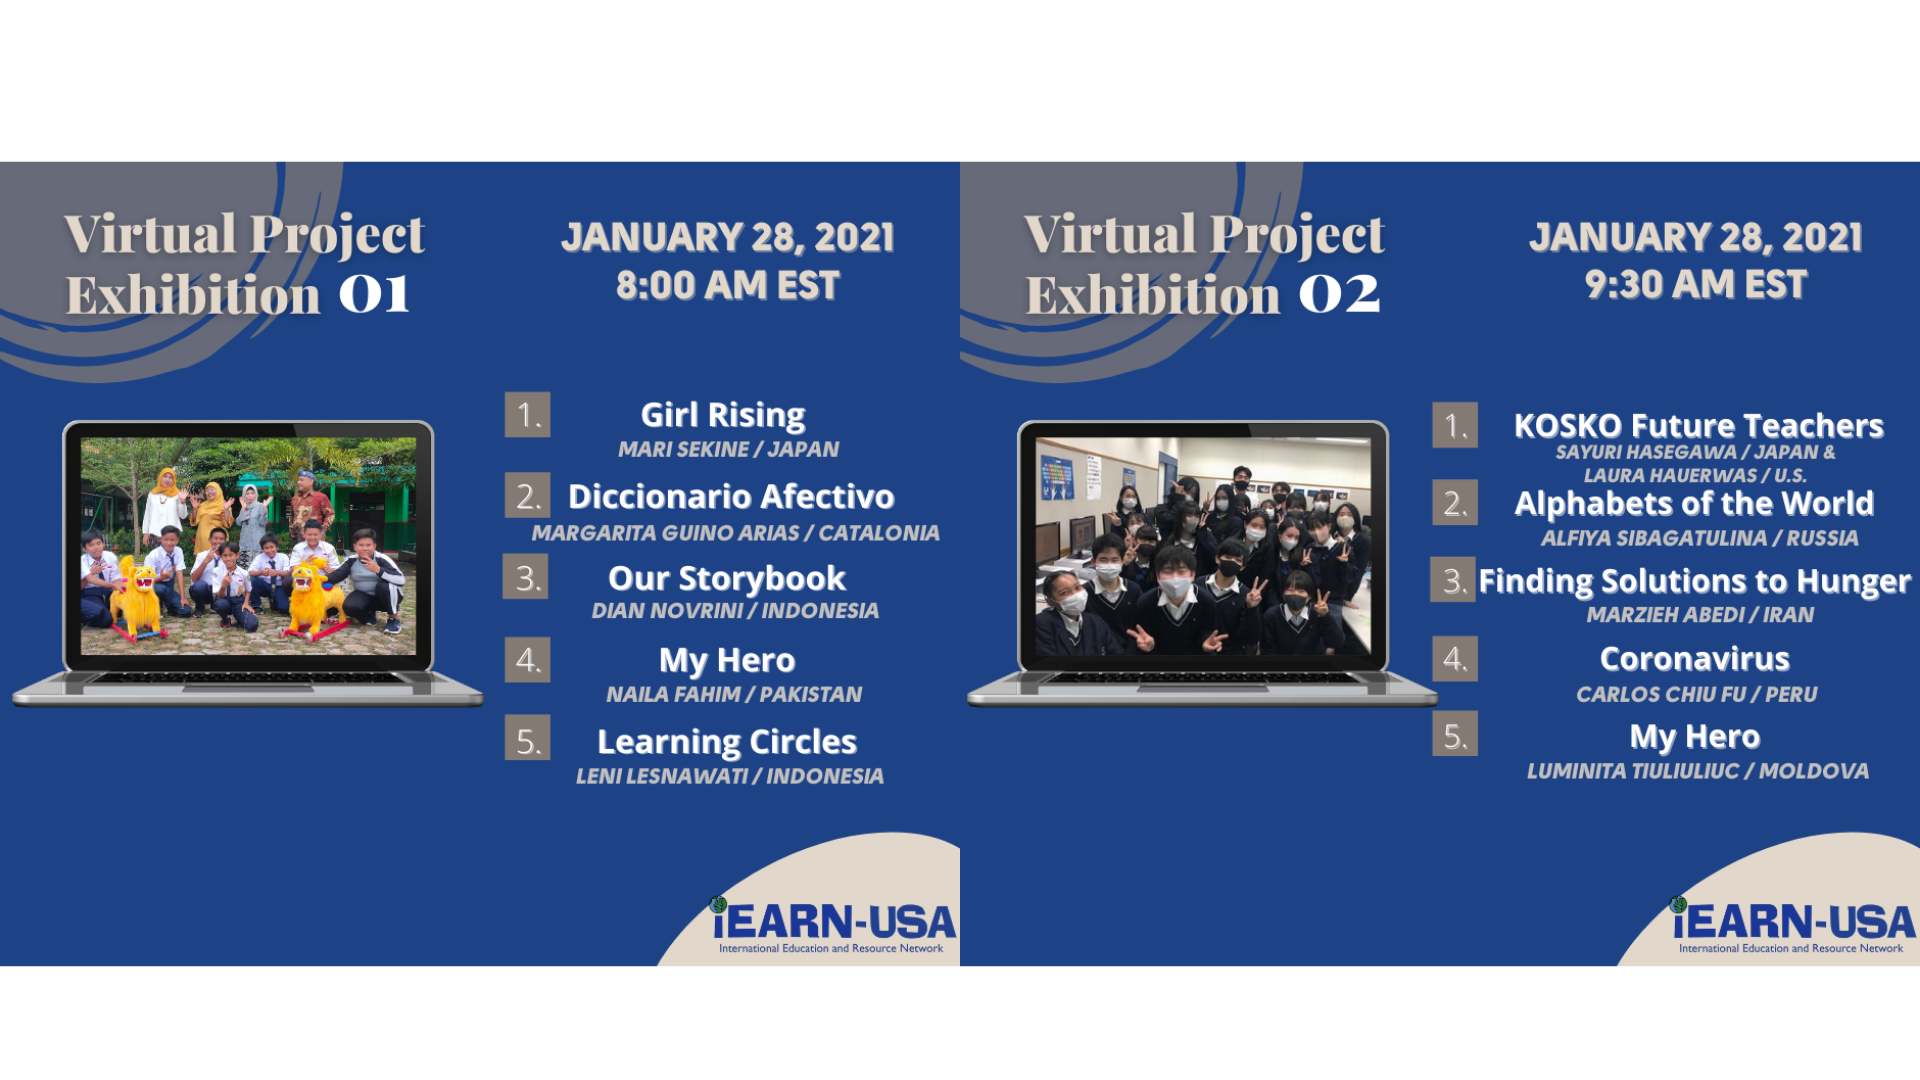 Vpe Programs 1 And 2